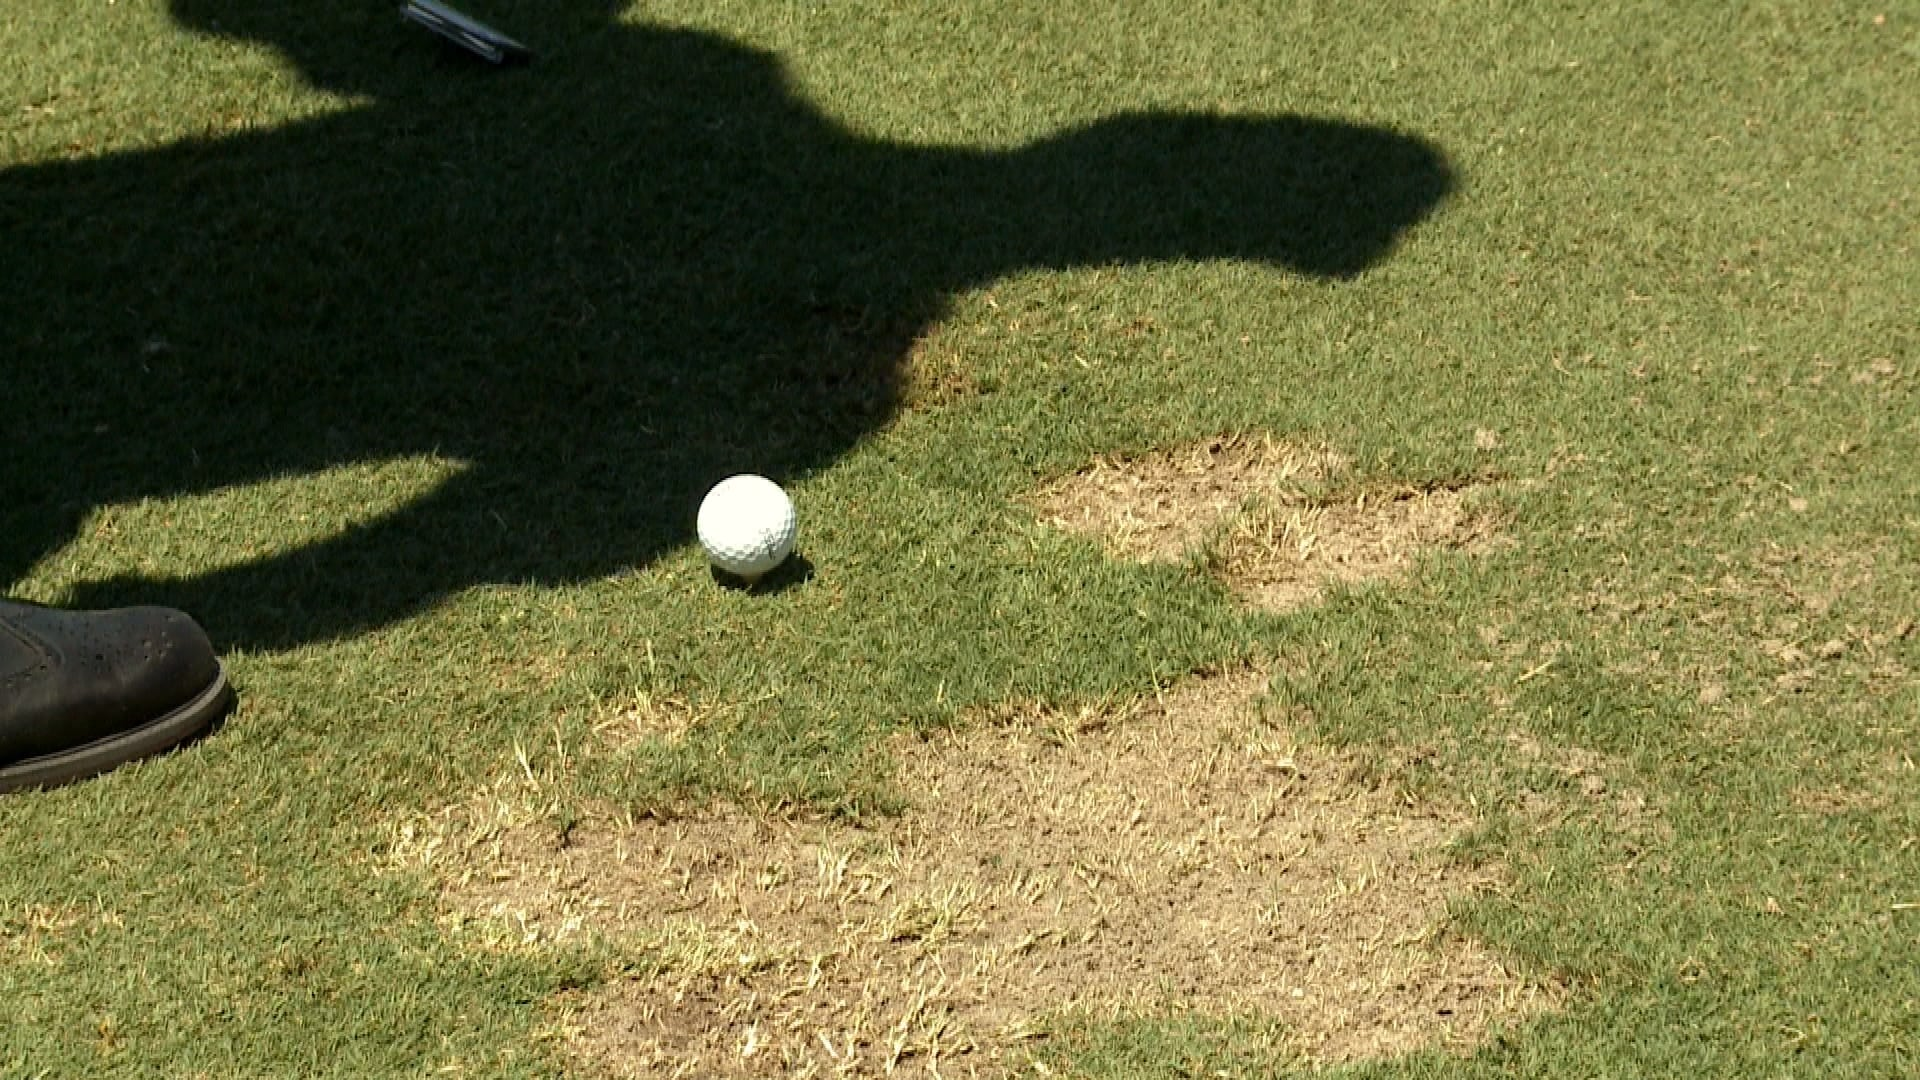 Sandy Lyle: How to use divot to line up tee shots | Golf ...